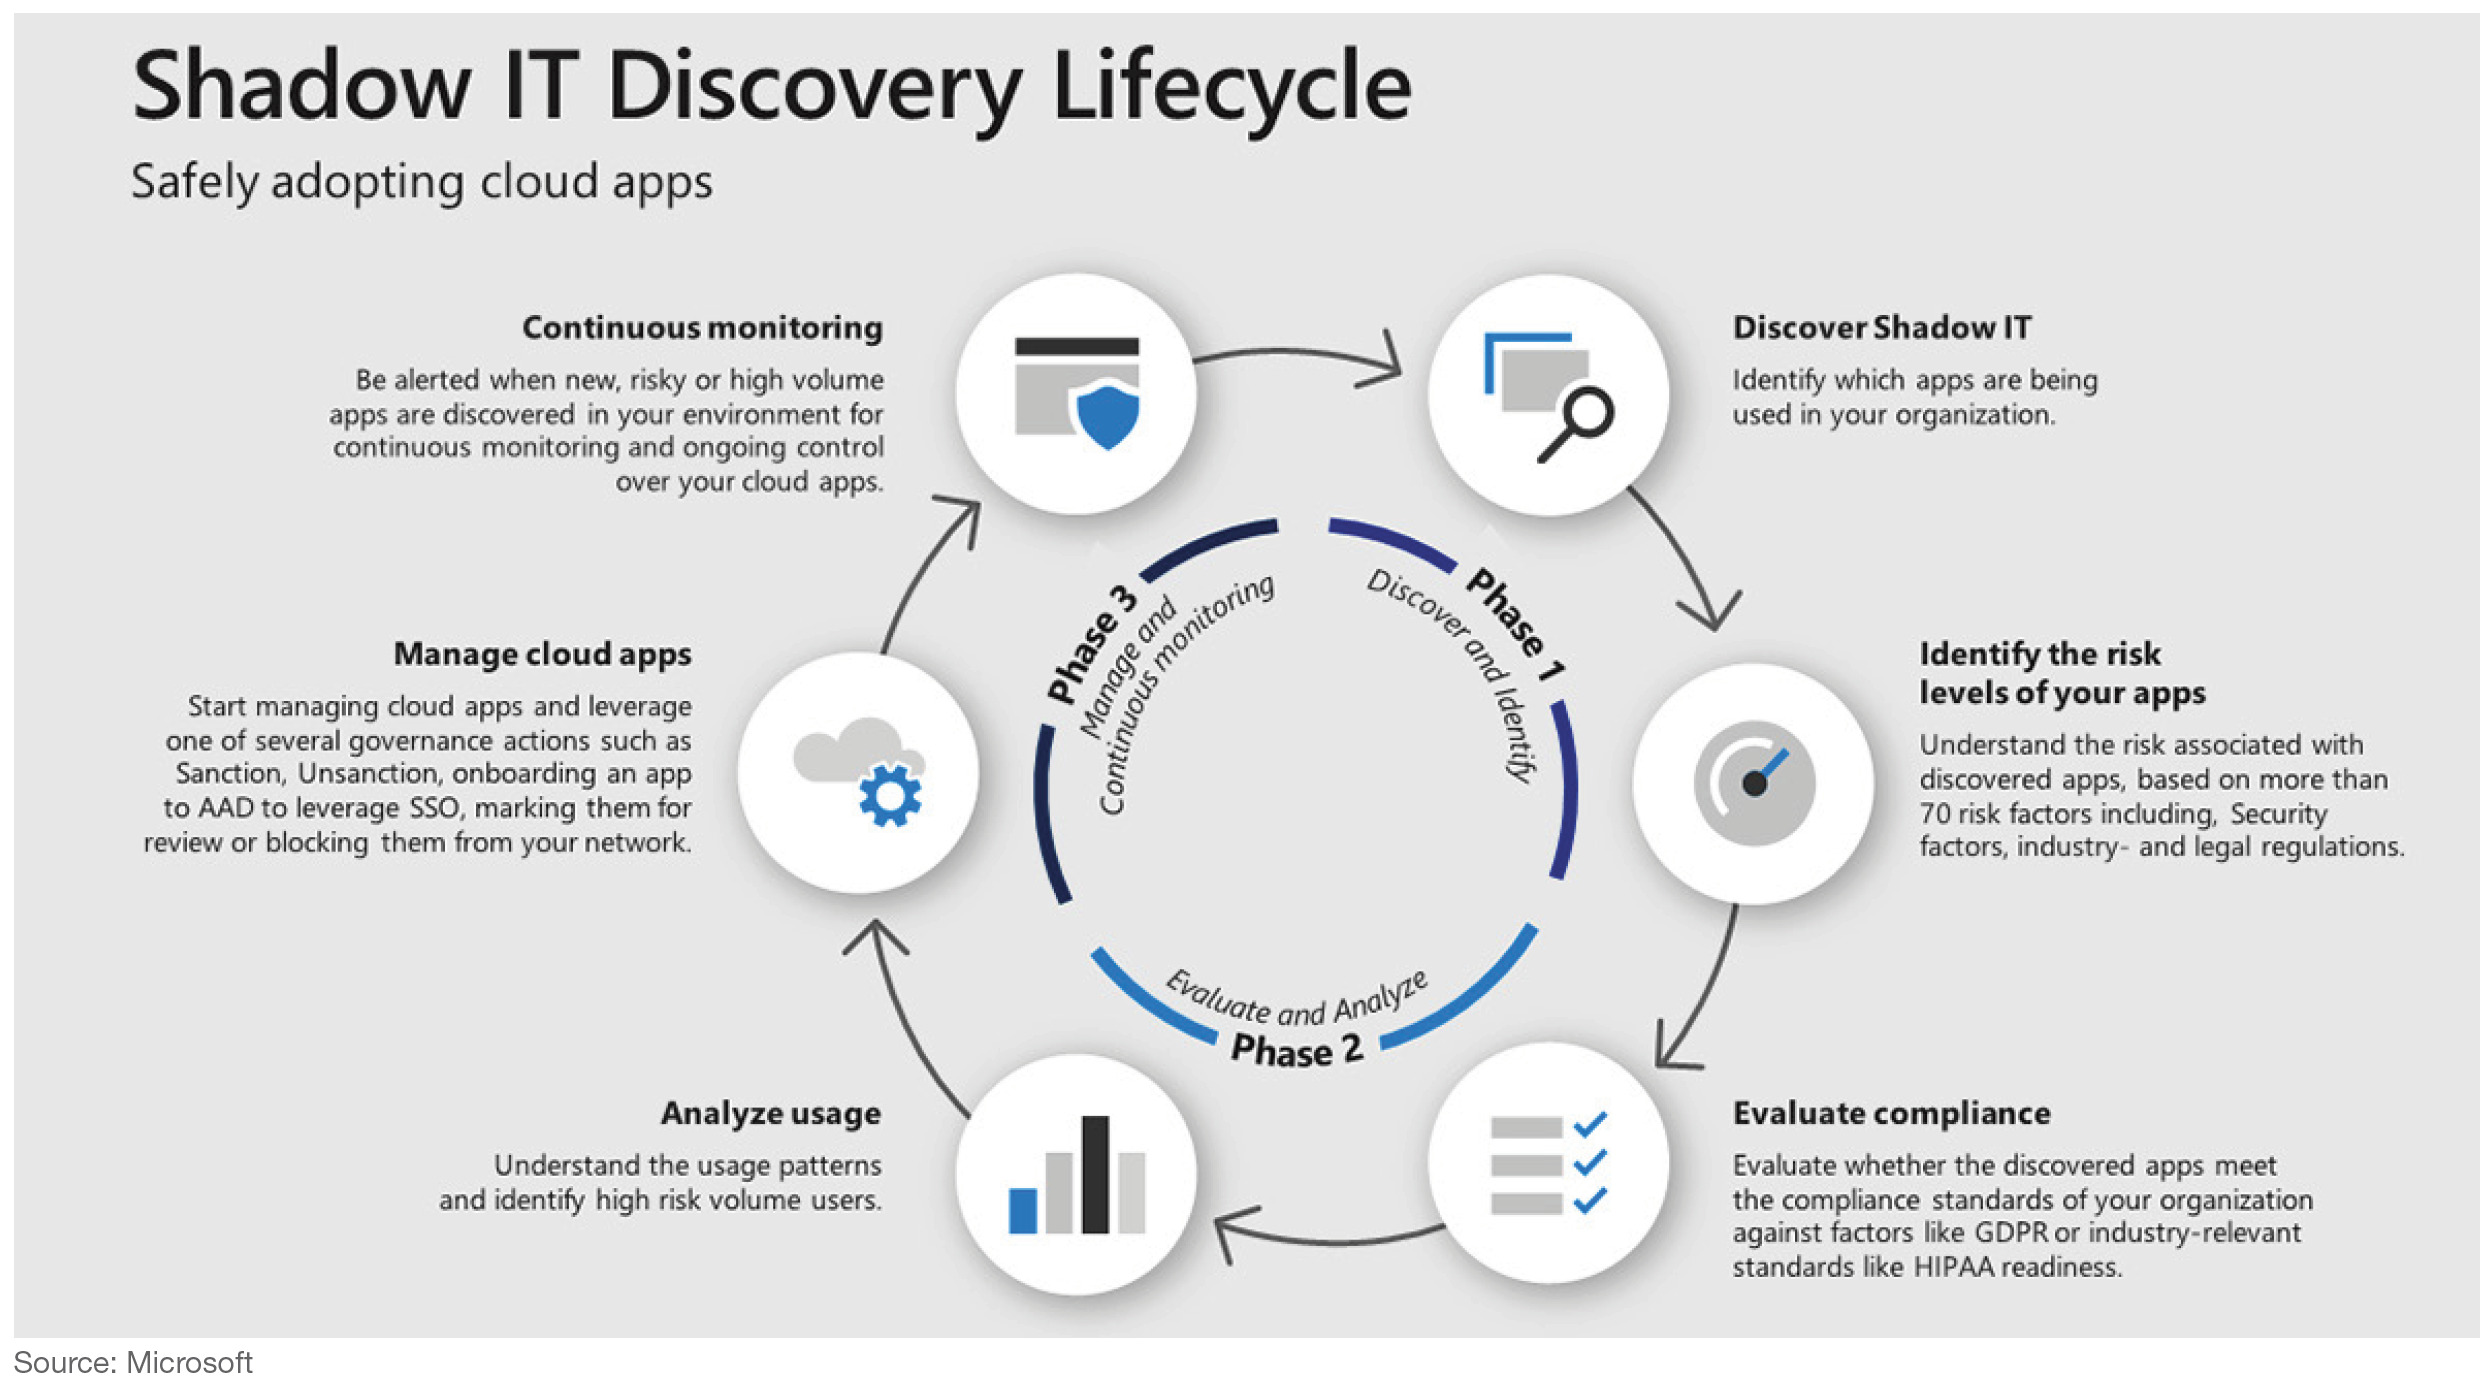 Shadow IT Discovery Lifecycle. Source: Microsoft